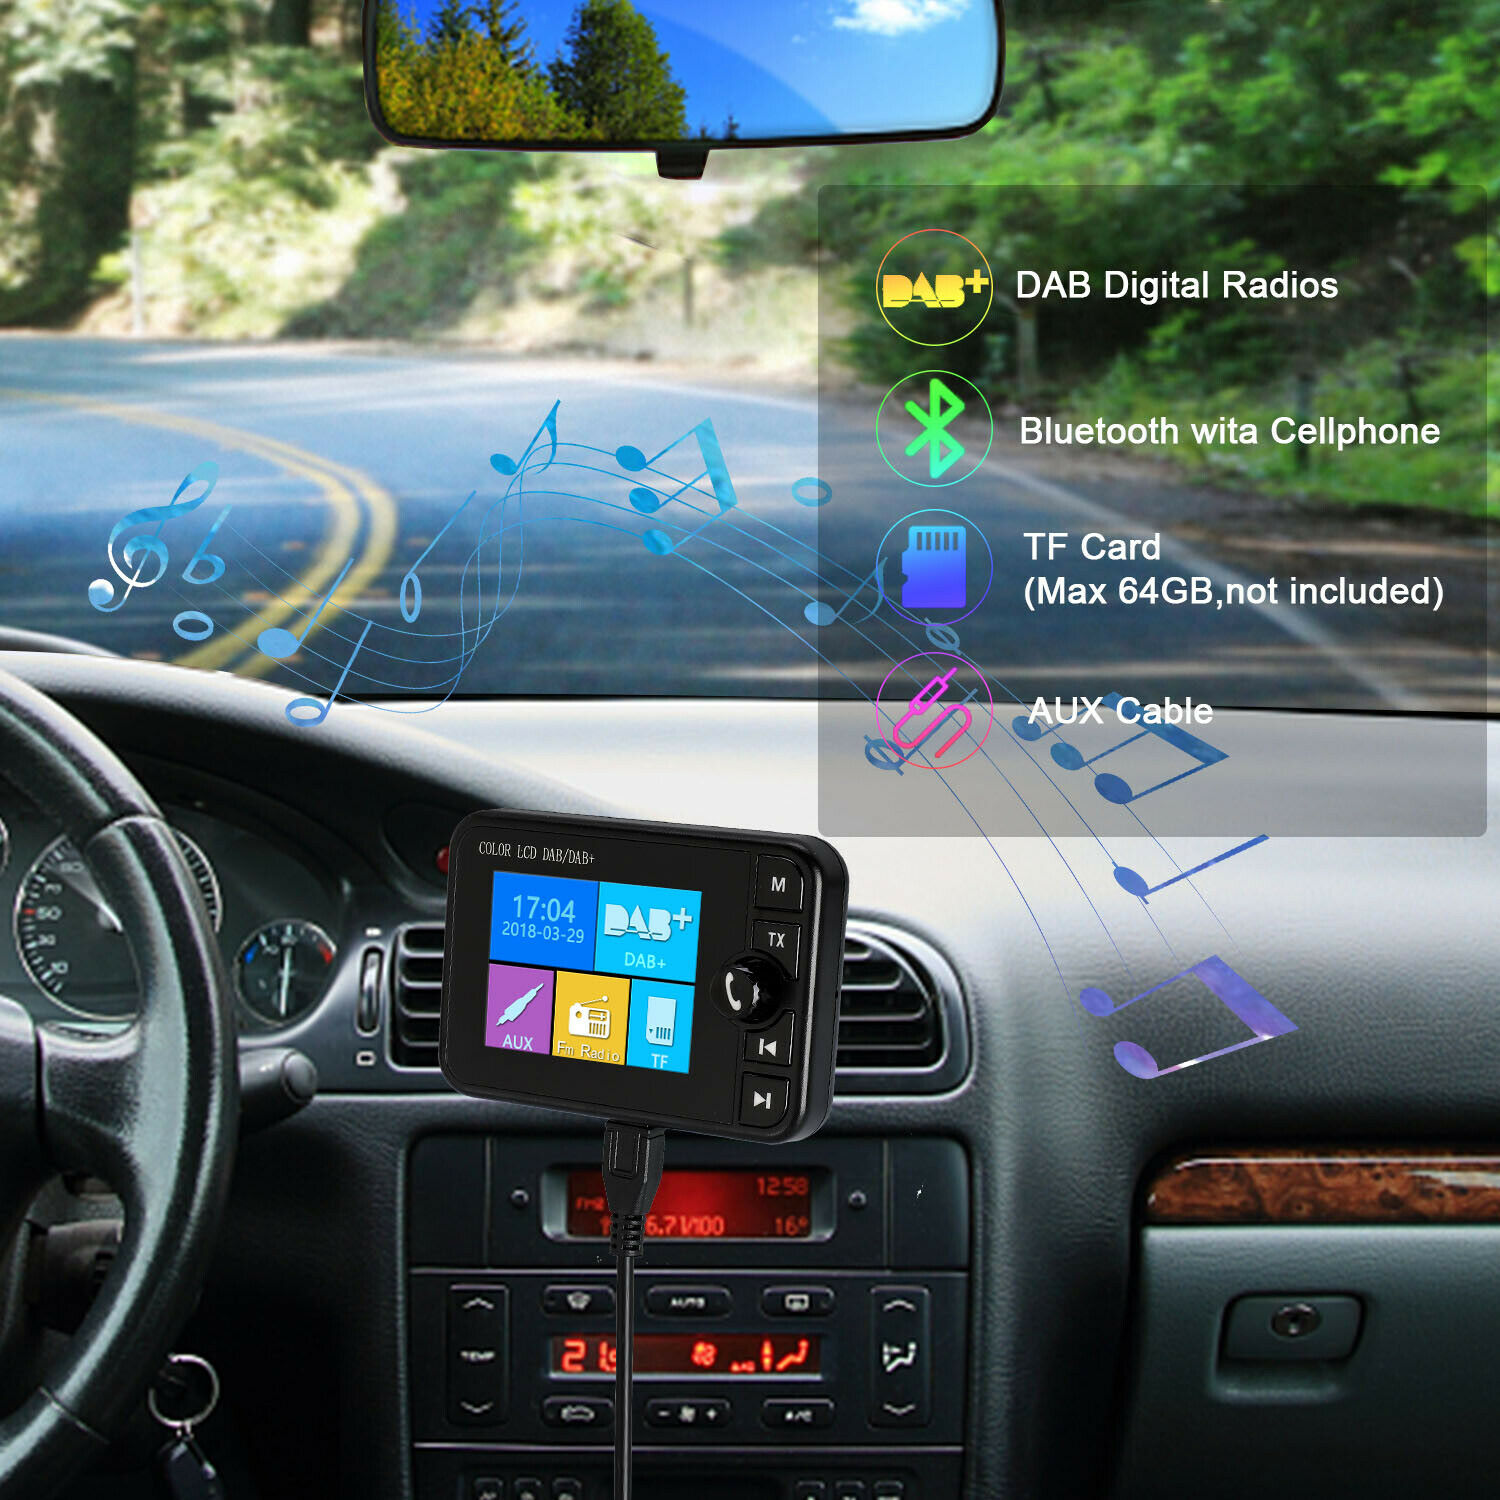 DAB Radio Receiver Colorized Screen Support Bluetooth Music Calling Answer for Car GDealsDAB Radio Receiver Colorized Screen Support Bluetooth Music Calling Answer for Car GDeals